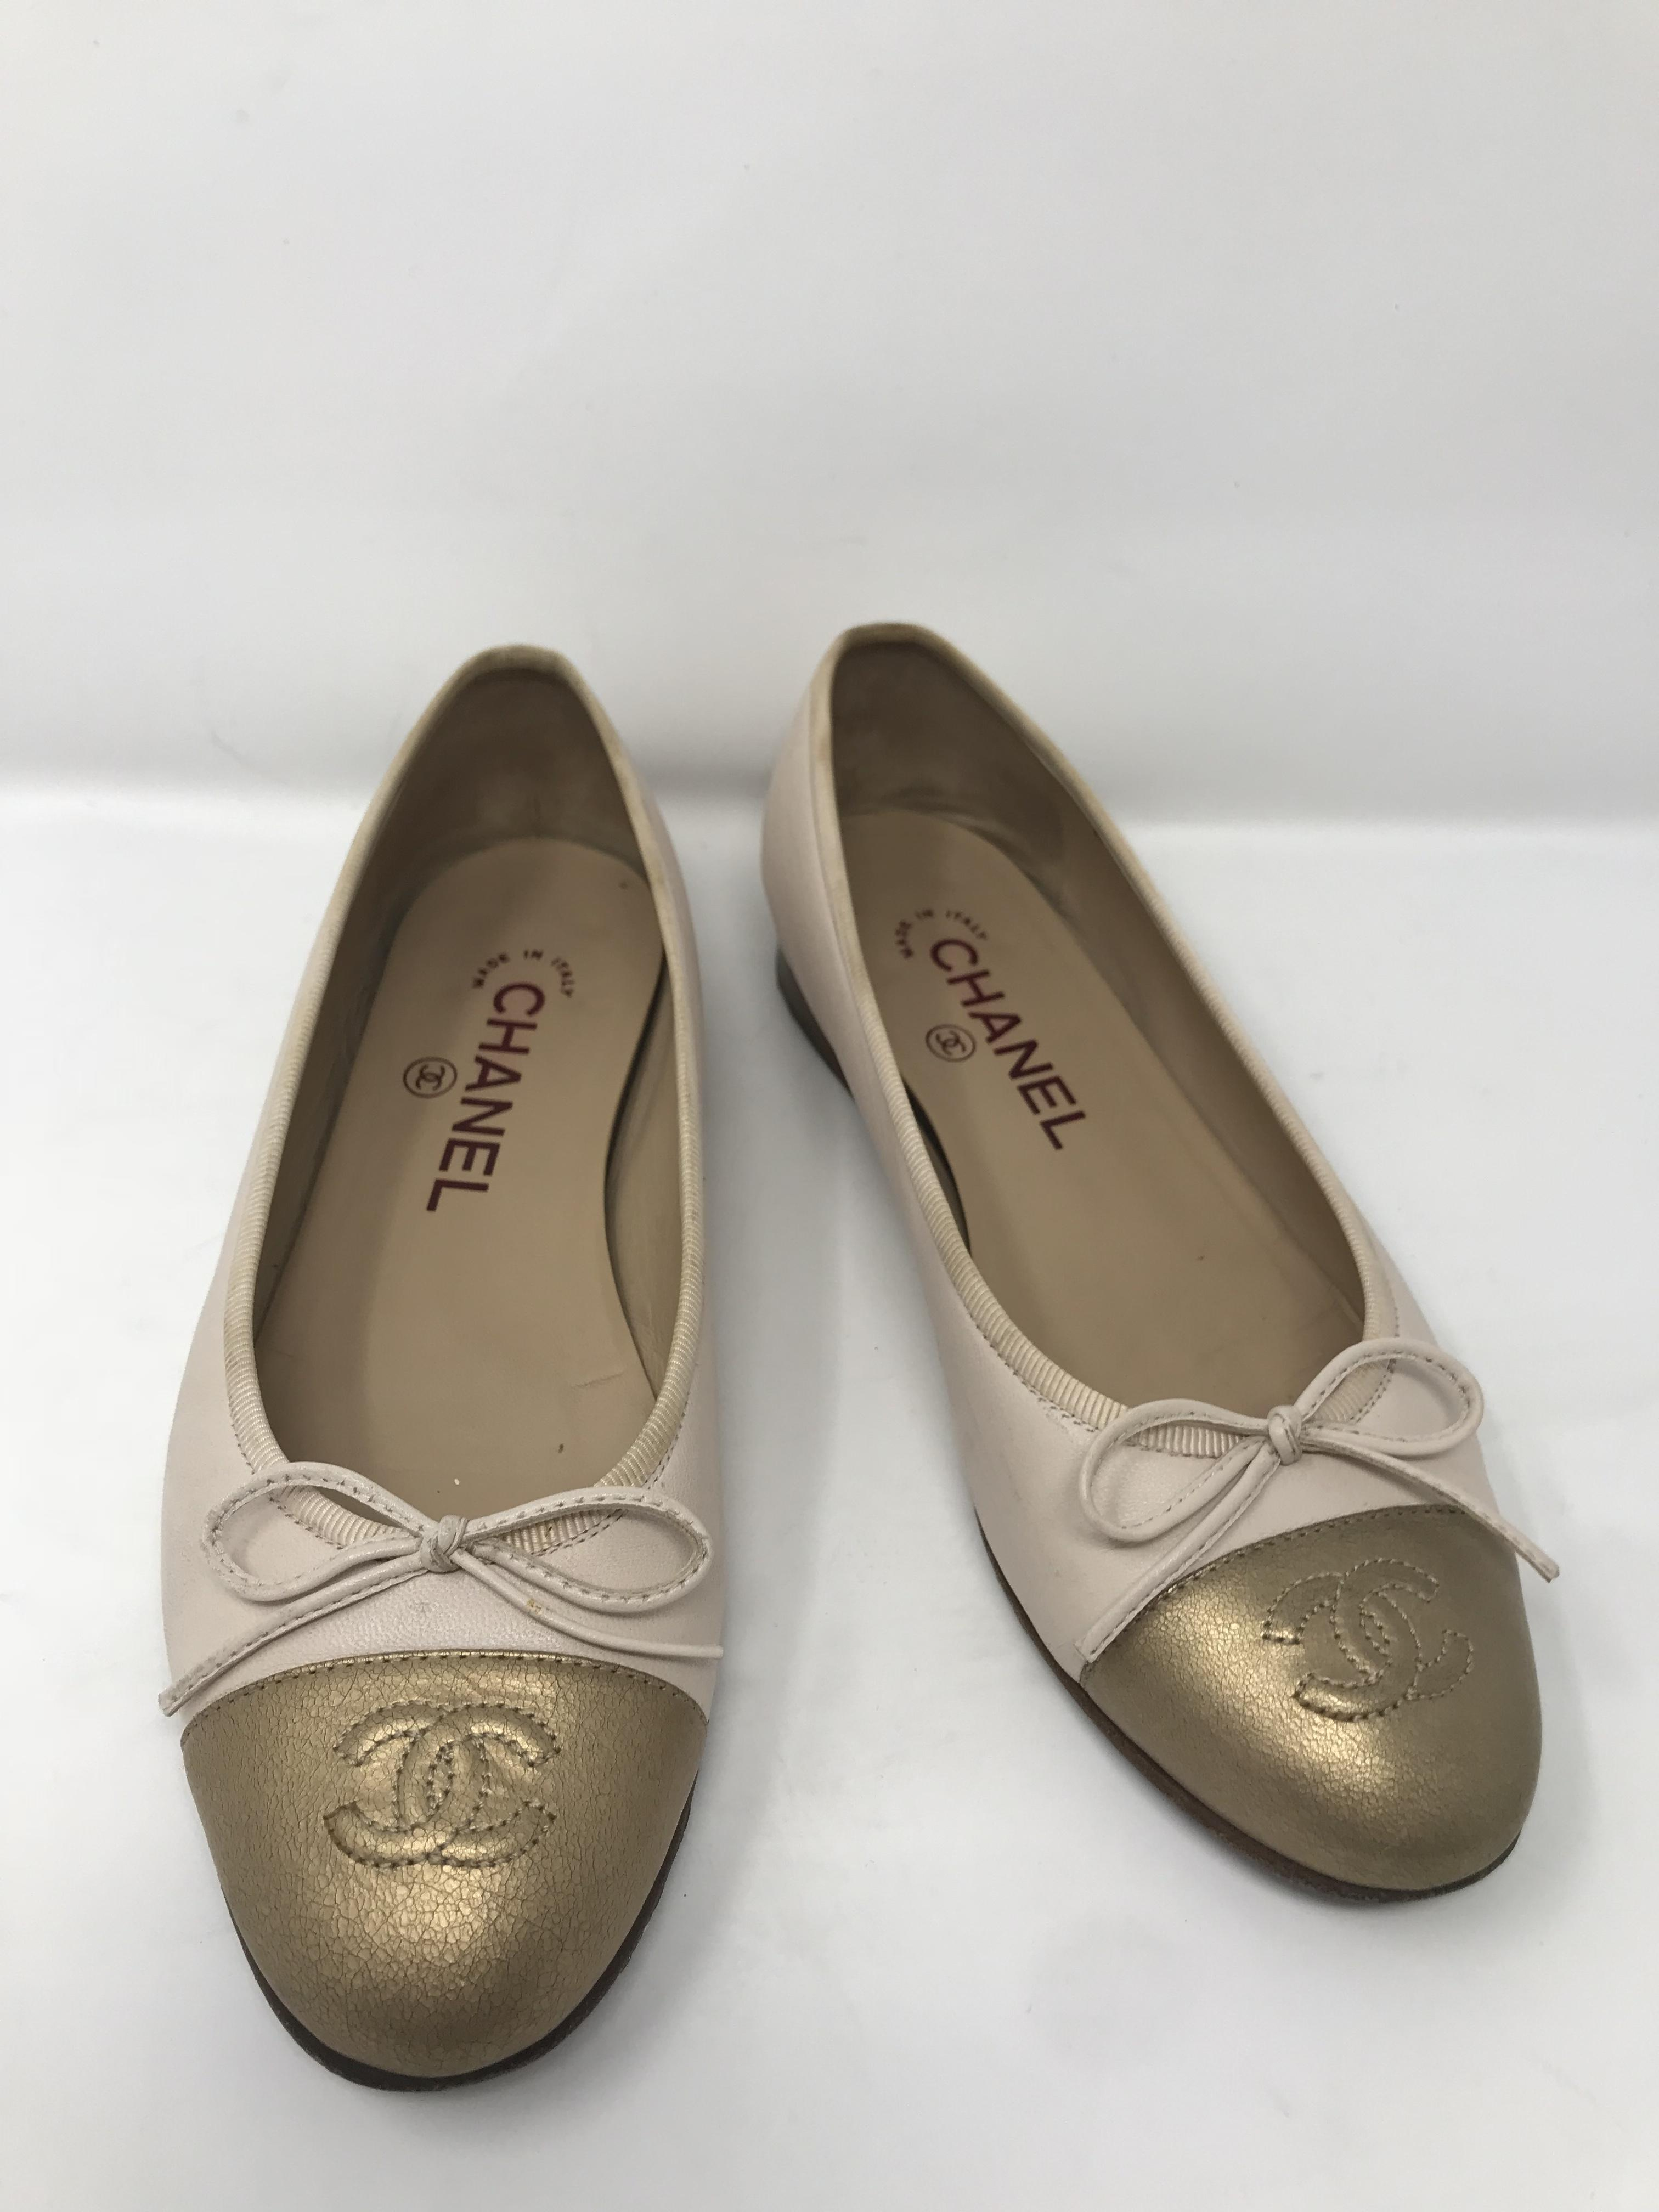 Chanel Shoes Price: $199.99